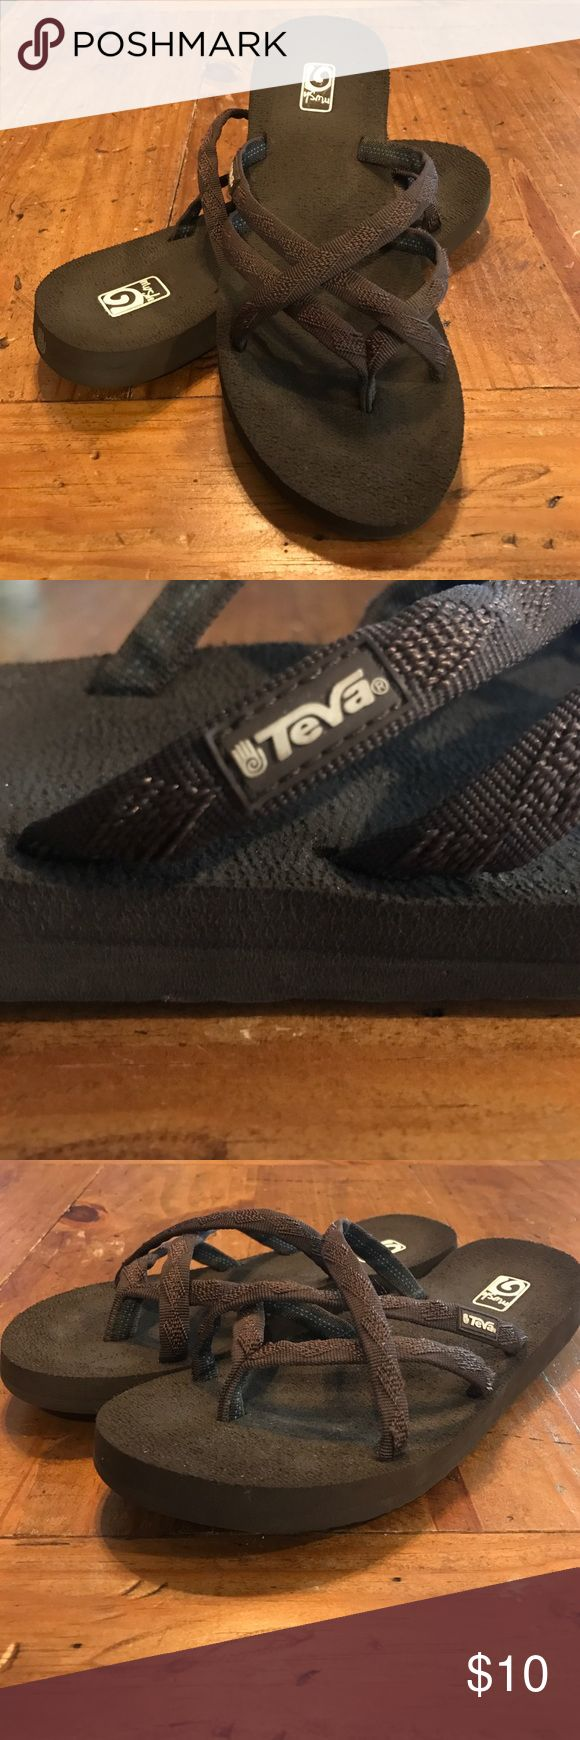 TeVa Flip Flops. Super Comfy! Super Cute! TeVa Brand Flip Flops! Lightly worn. Description in photos. They are Women's Size 8 but they run a size smaller. I wear a size 7 and they fit me perfectly! Teva Shoes Sandals